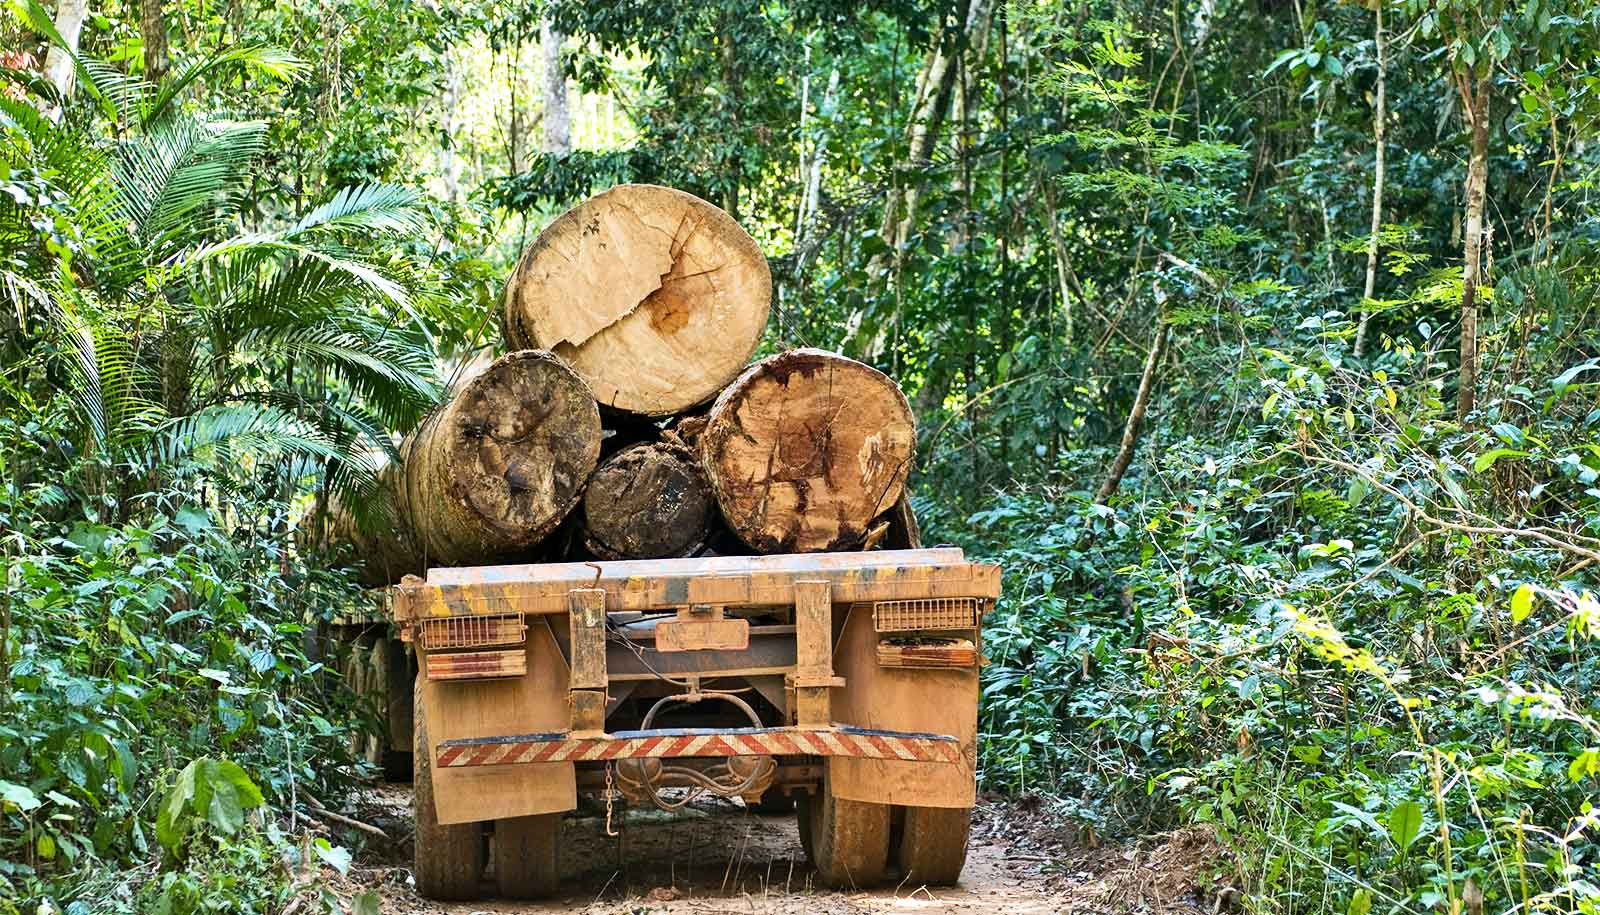 Loss of tropical forests will have 'terrifying' climate impact